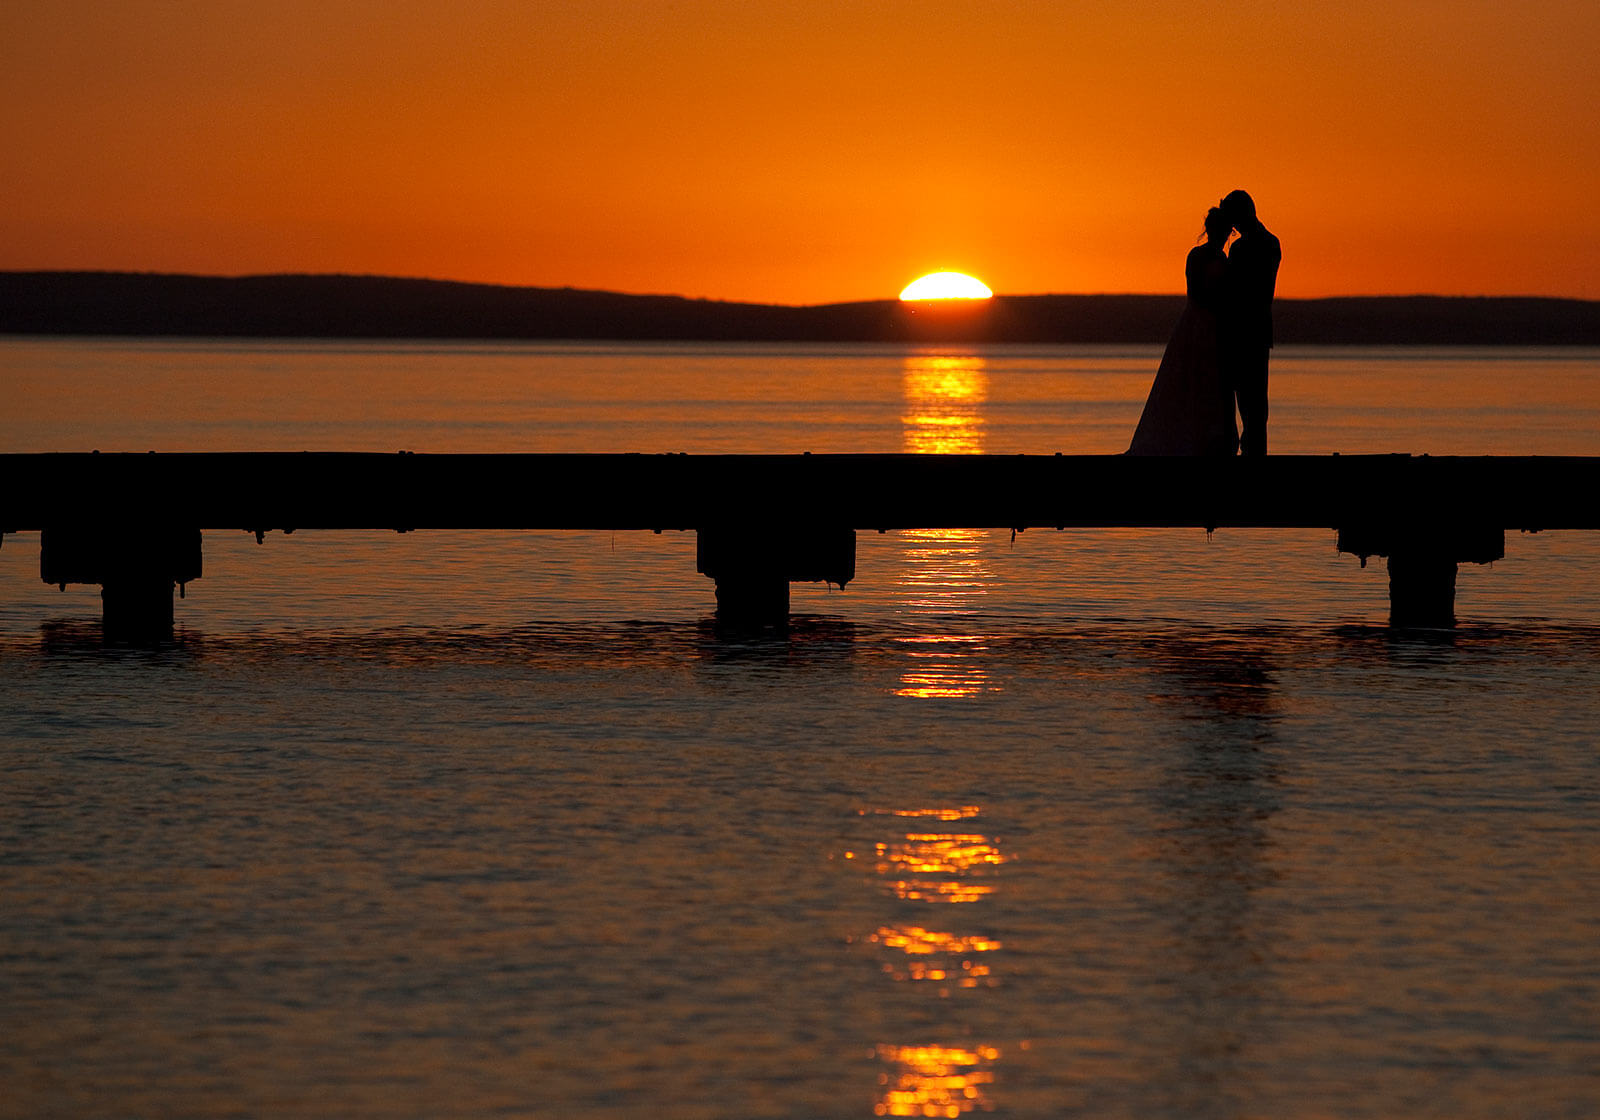 Jetty, Busselton Wedding Photography by Peter Adams-Shawn